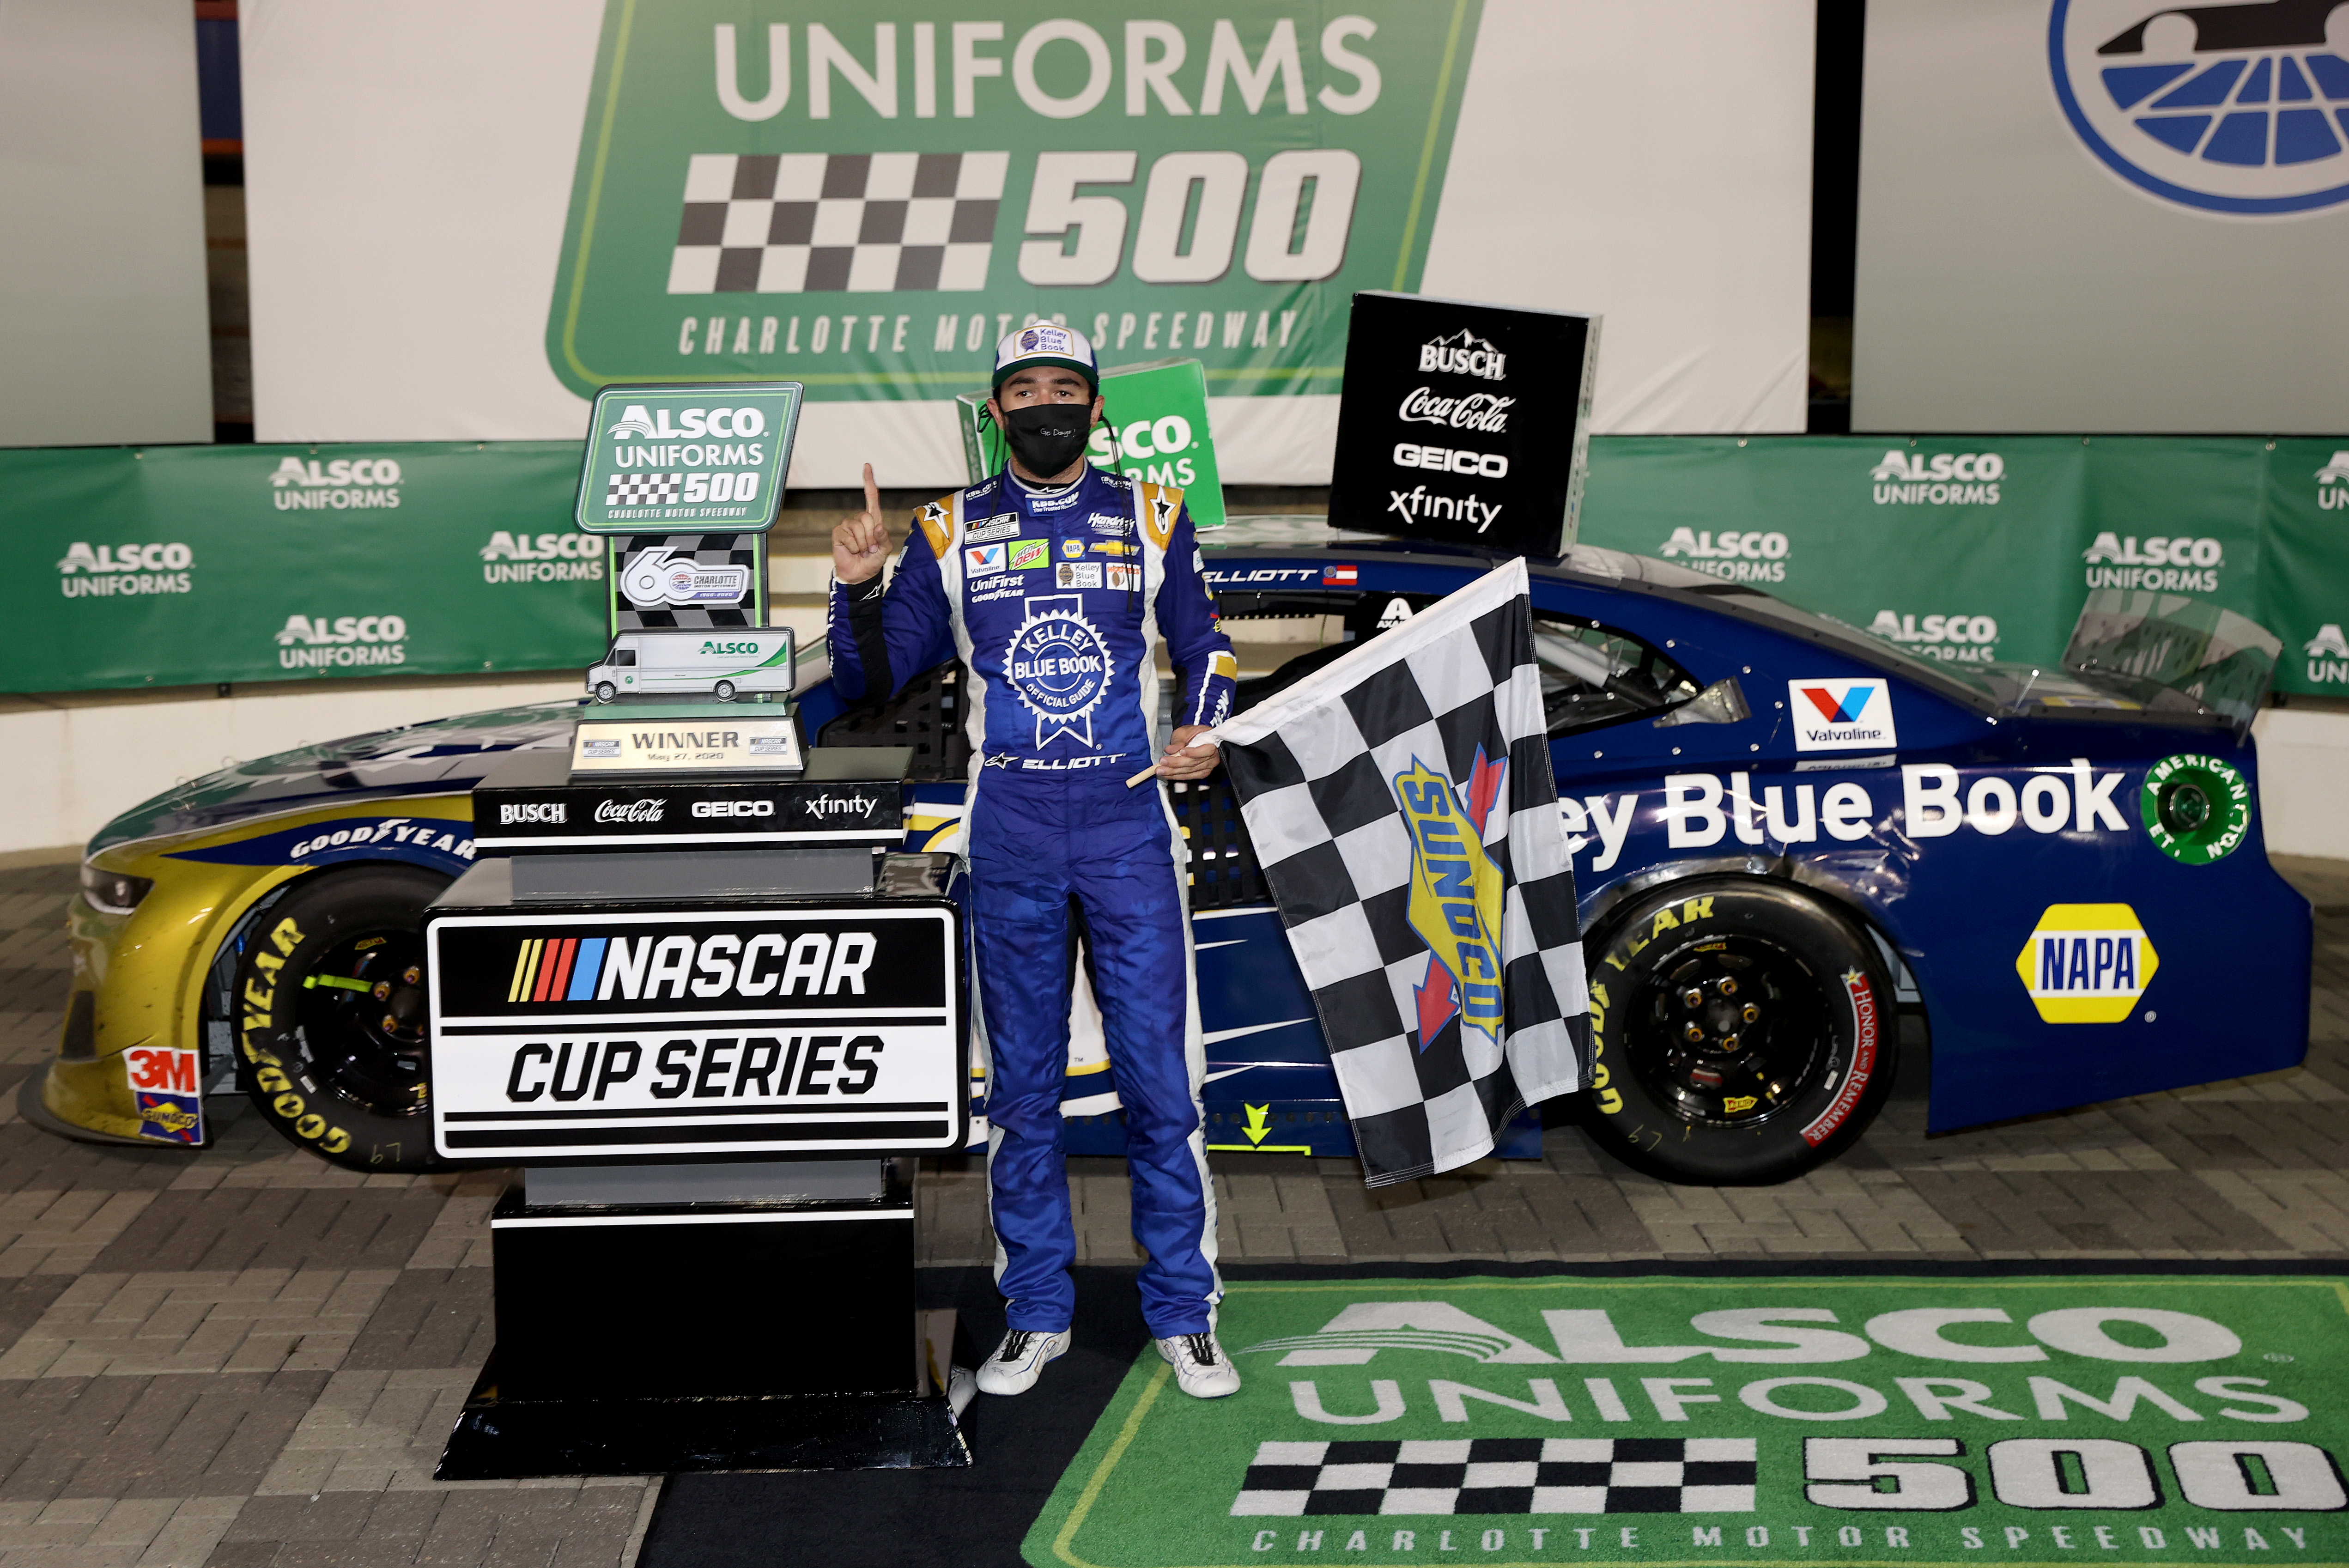 NASCAR Cup Series driver Chase Elliott celebrates in Victory Lane after winning the NASCAR Cup Series Alsco Uniforms 500